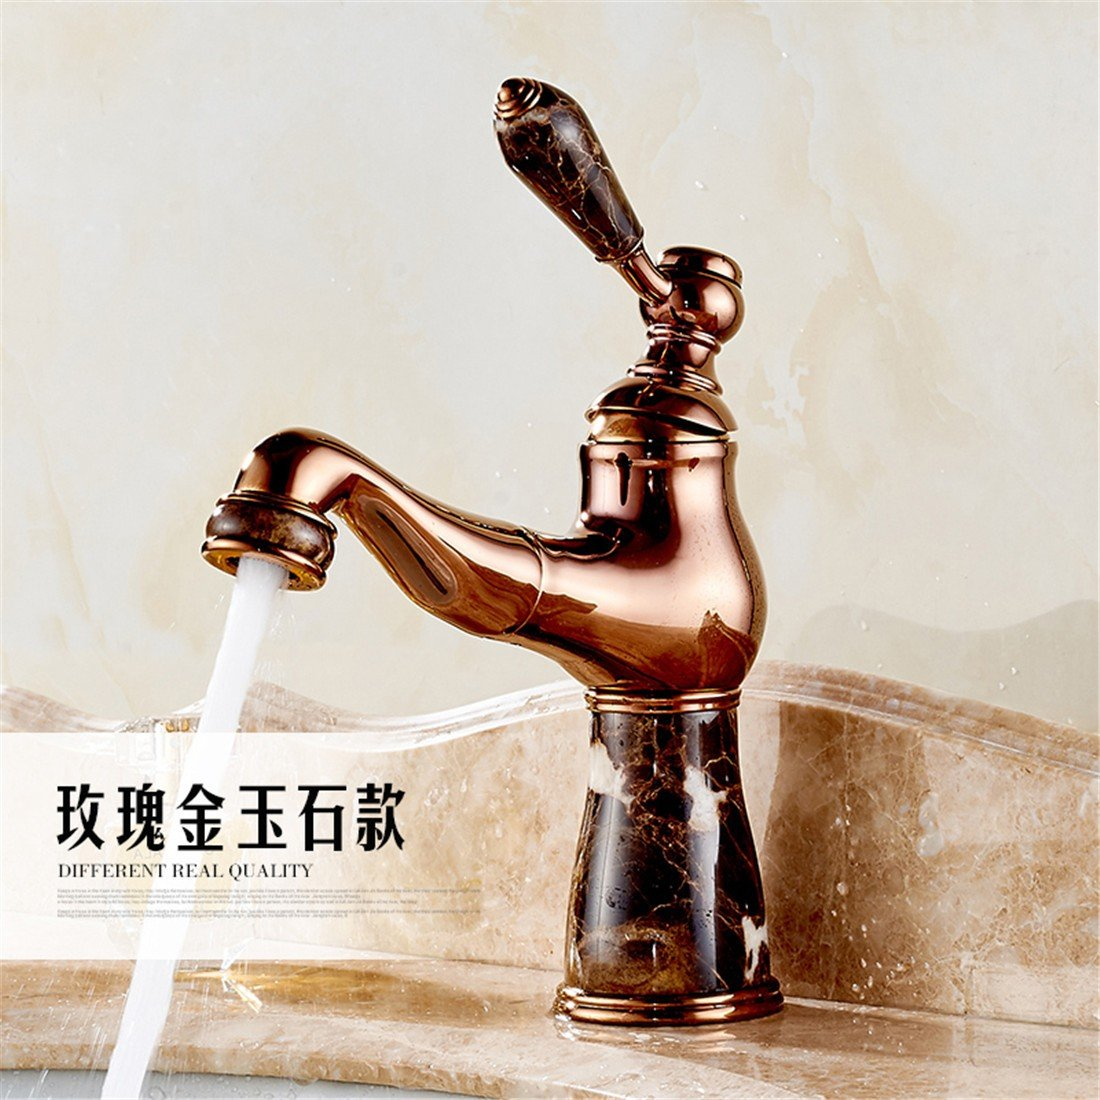 Fbict European Natural Jade Faucet Copper Pull Faucet Bathroom Basin Single Hole Basin hot and Cold Water Faucet, pink gold Jade Pull for Kitchen Bathroom Faucet Bid Tap